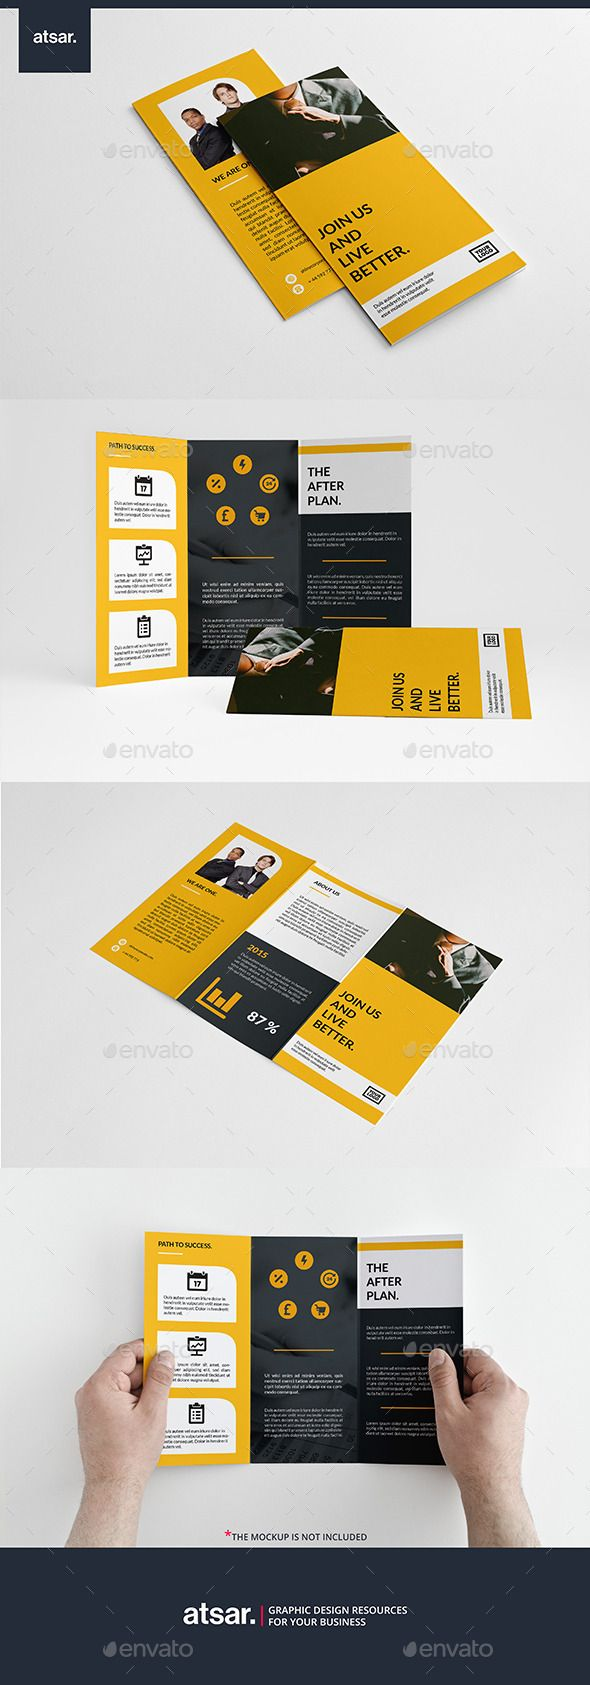 Yellow Corporate Trifold Brochure Template #design Download: http://graphicriver.net/item/yellow-corporate-trifold/12787429?ref=ksioks